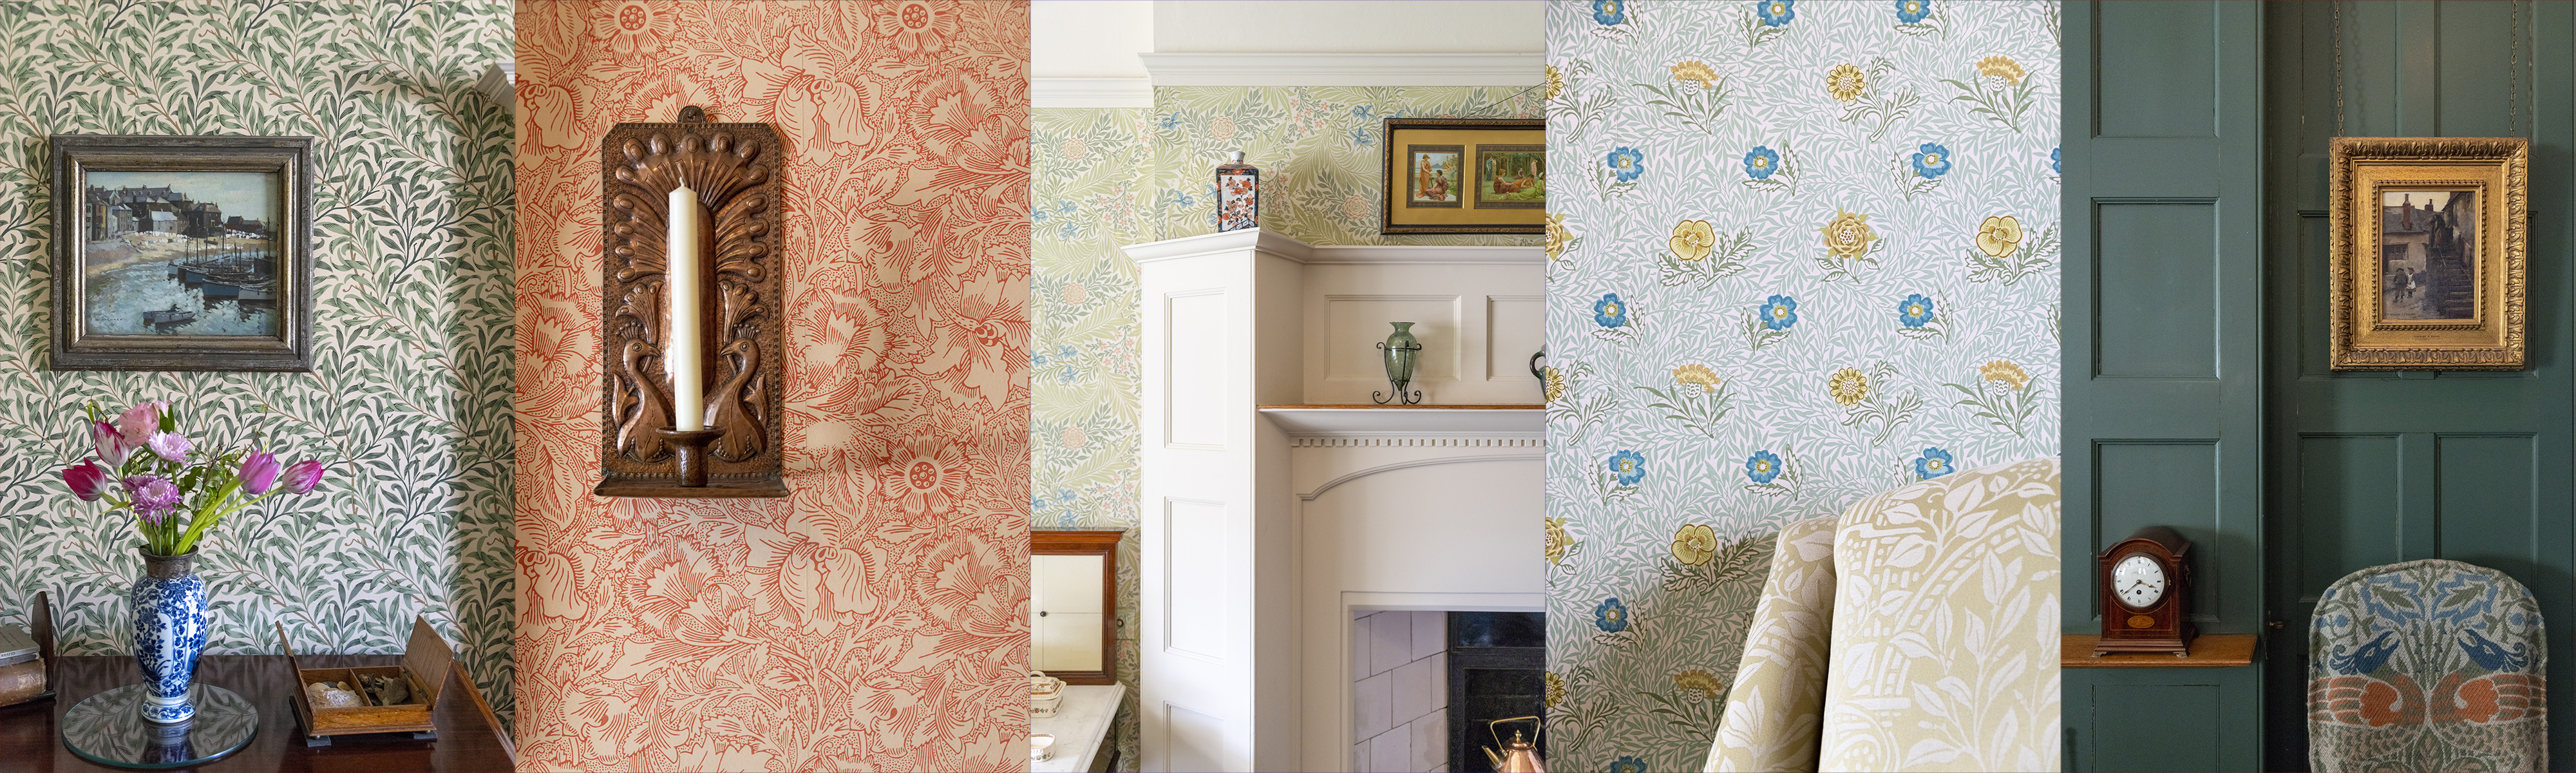 Standen House Interiors photography